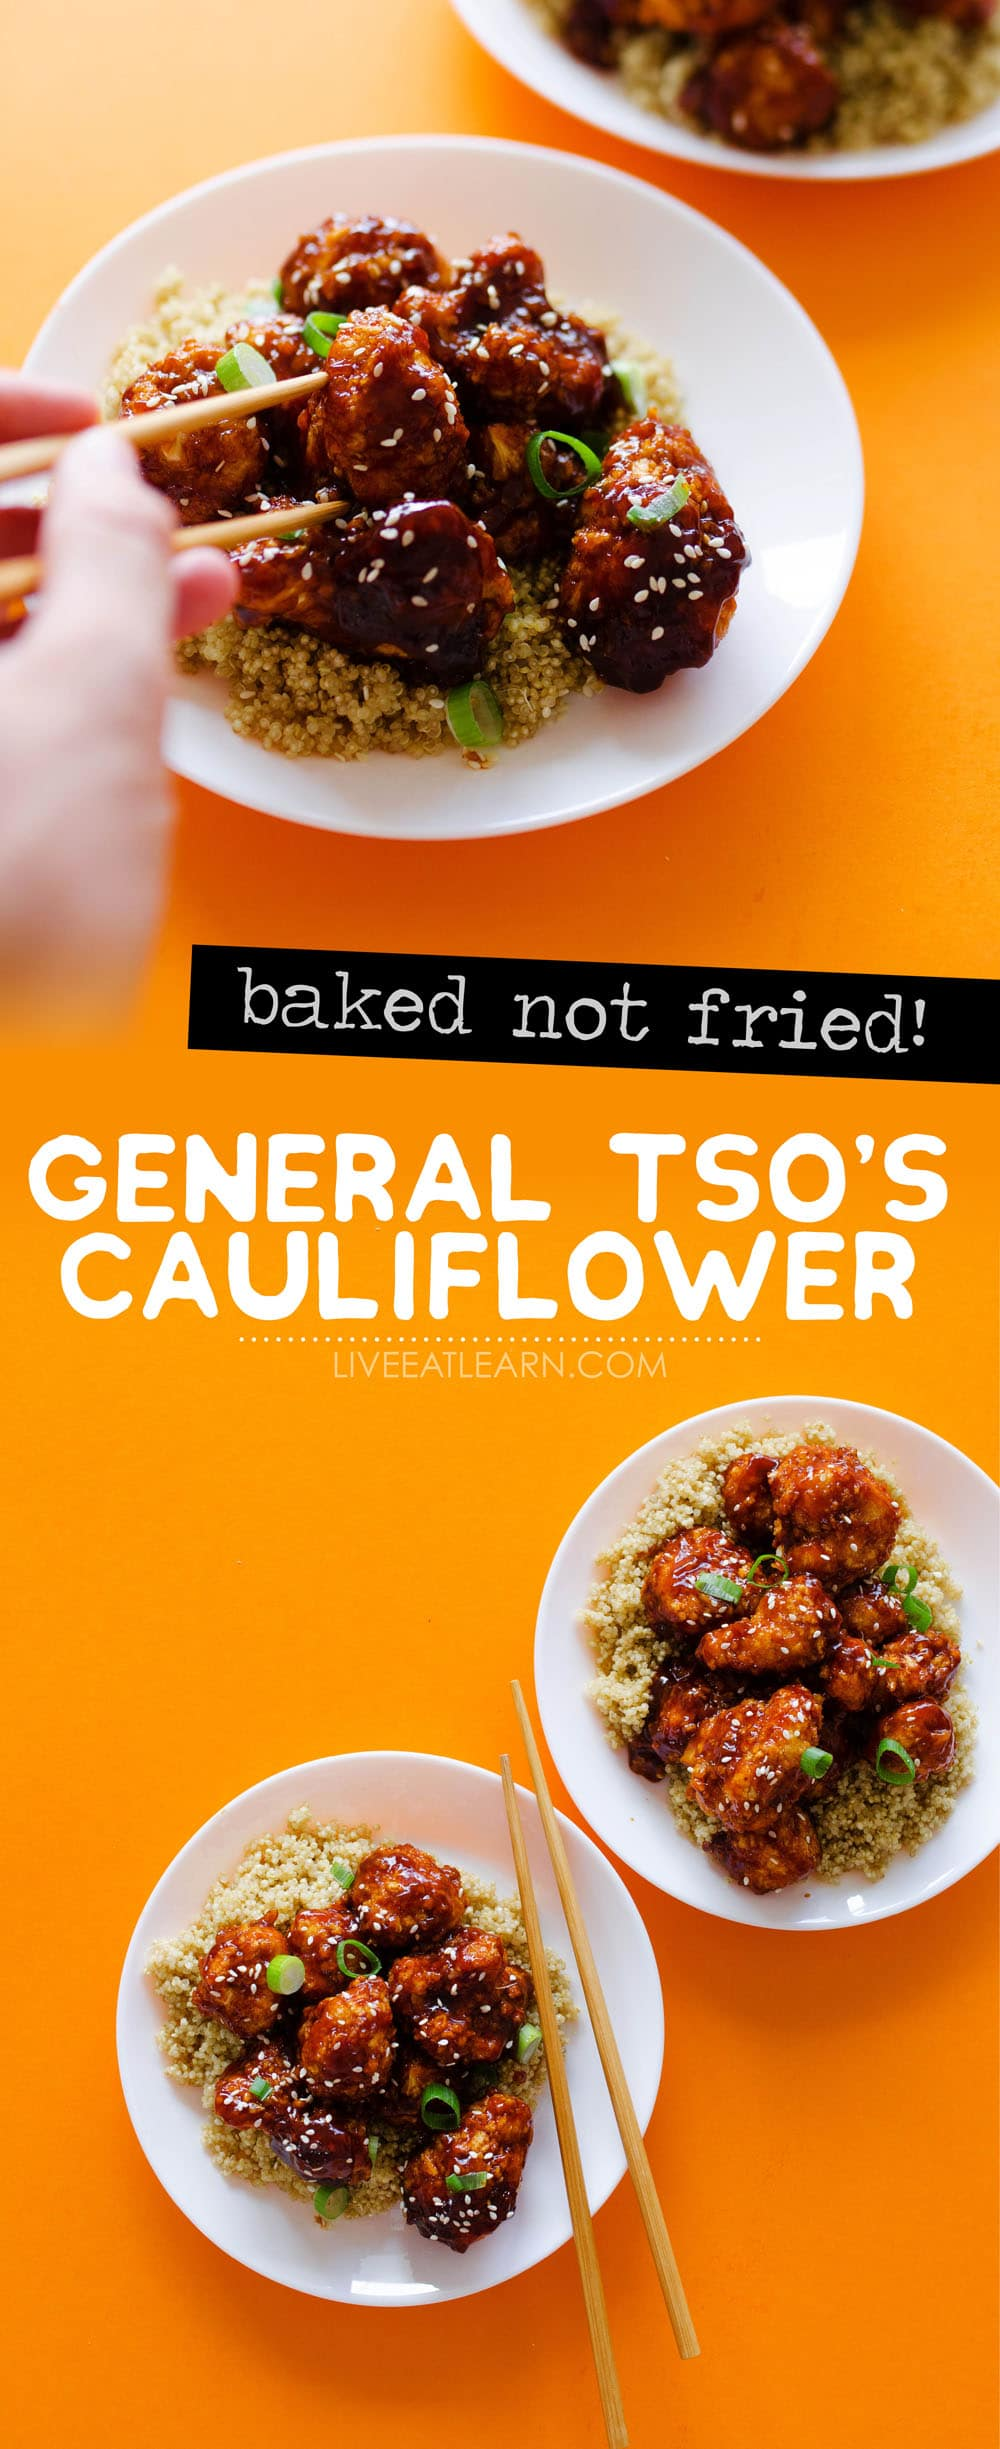 I'm not exaggerating when I say that this Baked General Tso's Cauliflower recipe tastes exactly like the Chinese takeout dinner we all know and love (but without the frying or meat!) Crispy panko-coated cauliflower in a tasty, sticky sauce that's as healthy as it is delicious.